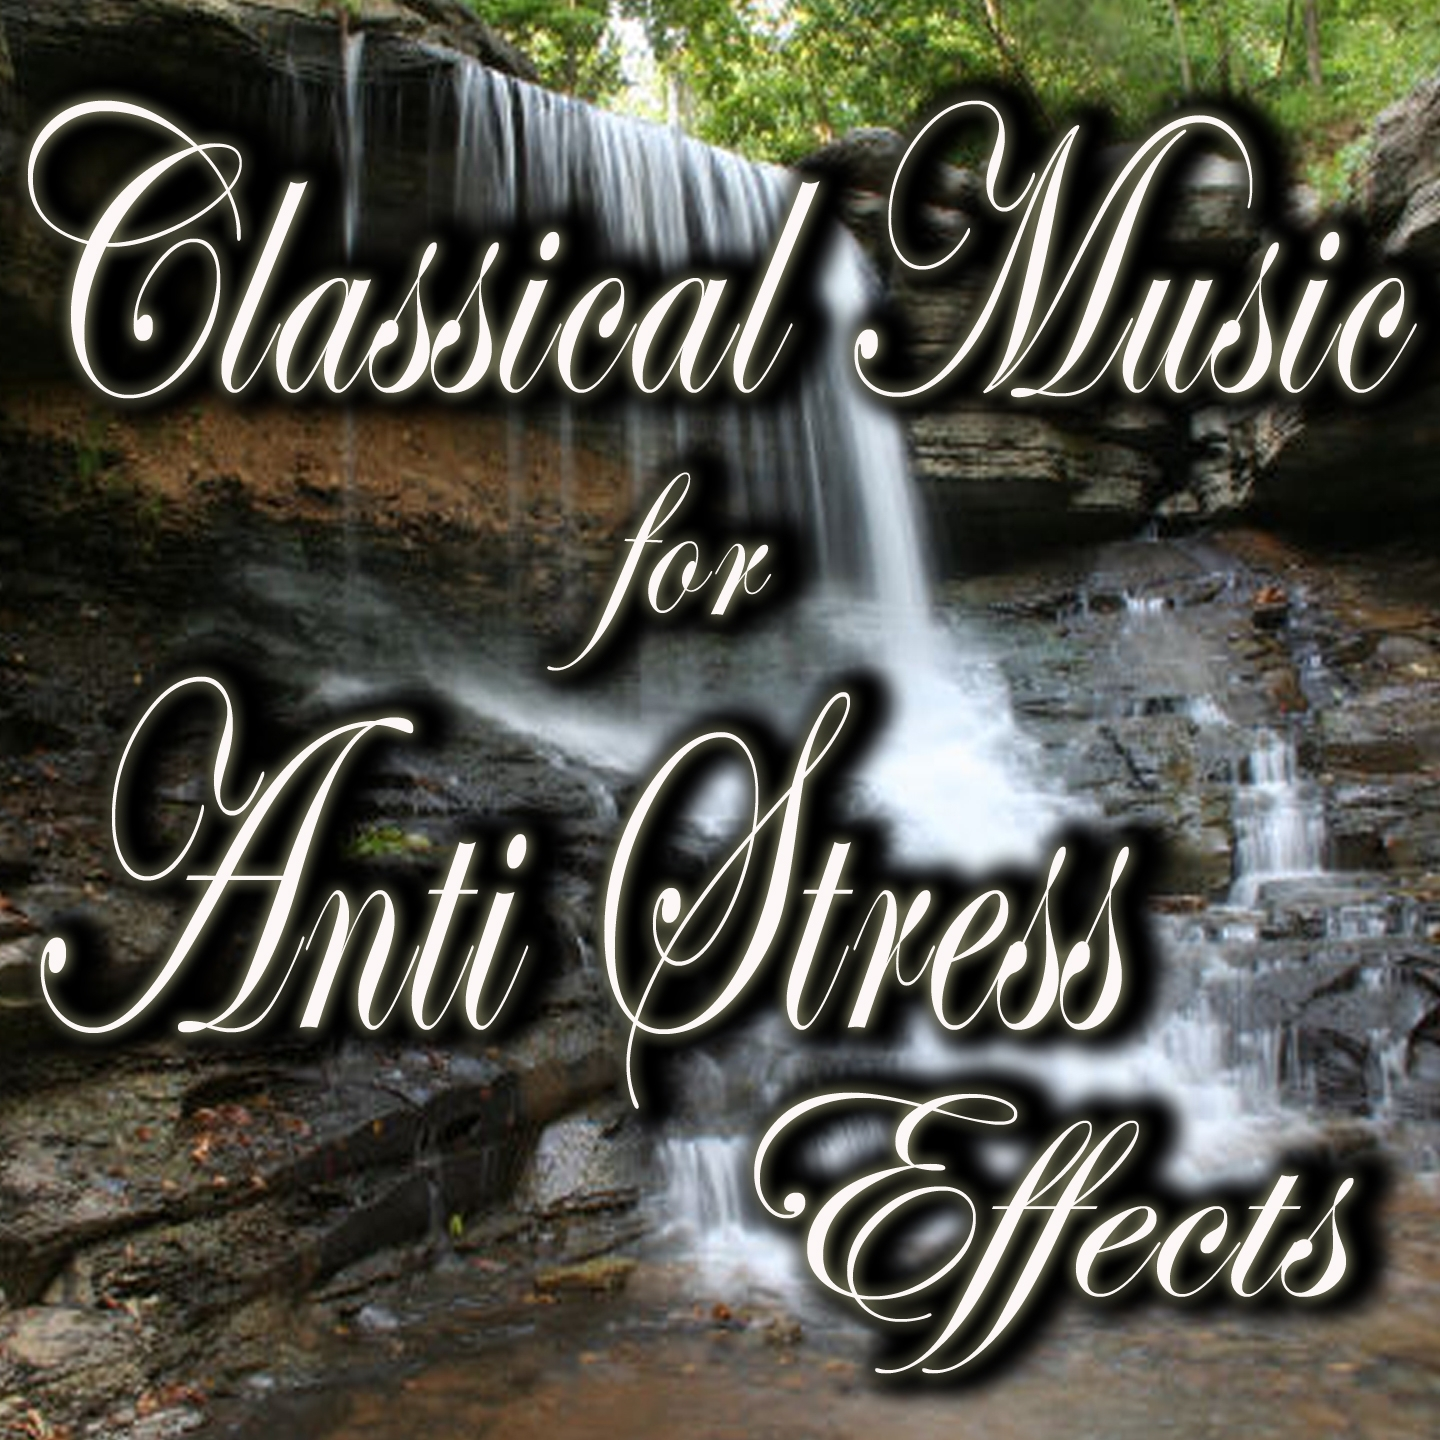 Classical Music for Anti Stress Effects